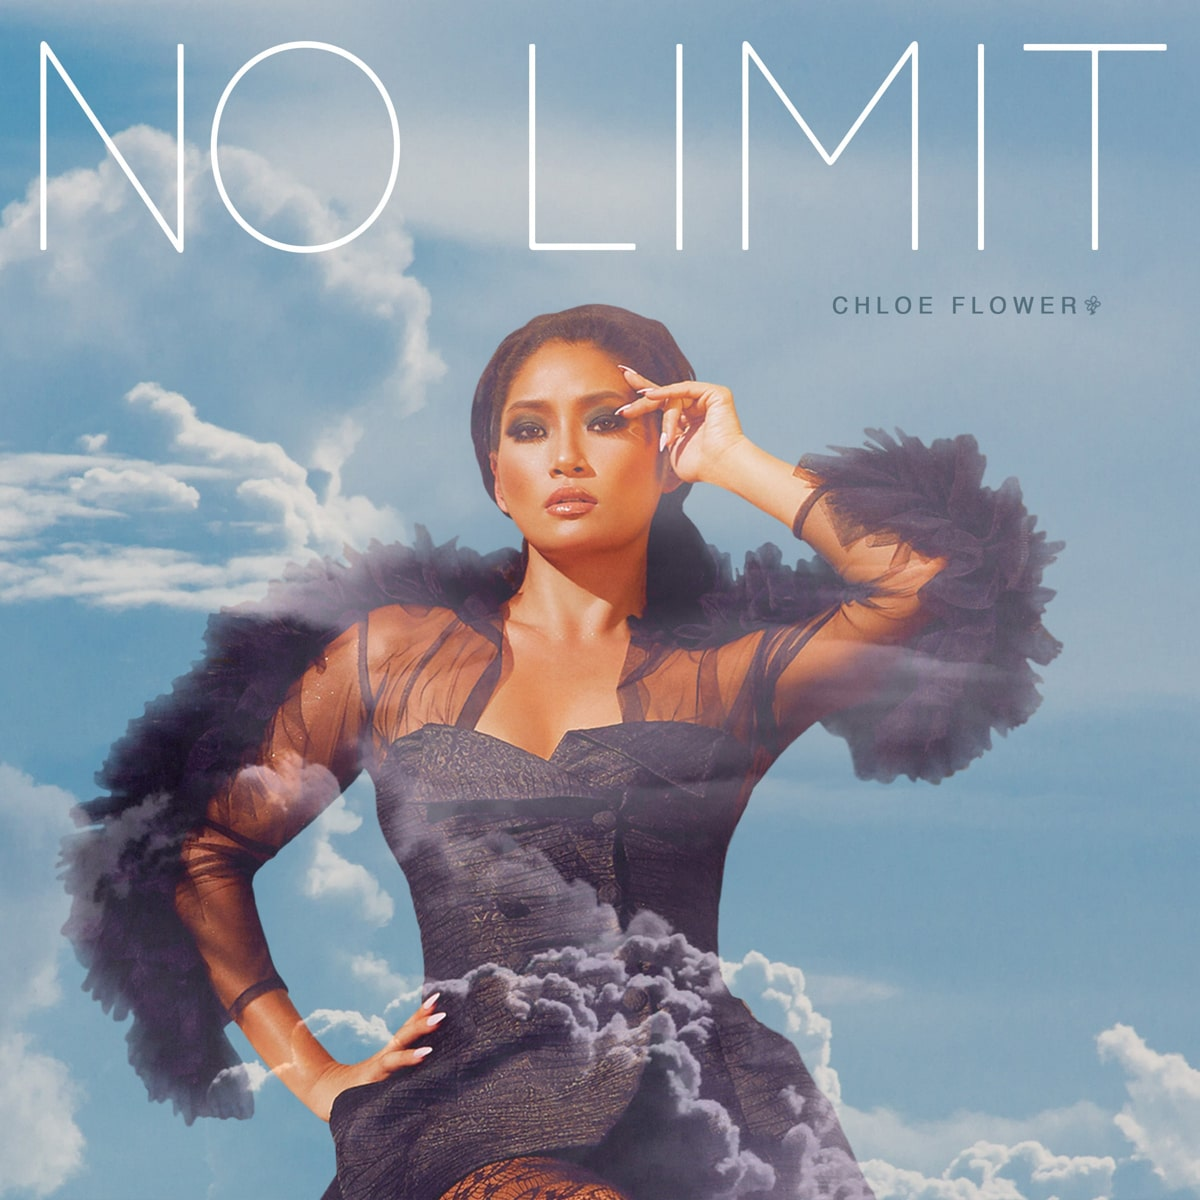 No Limit de Chloe Flower, une pianiste pleine de charisme sur les toits de New-York